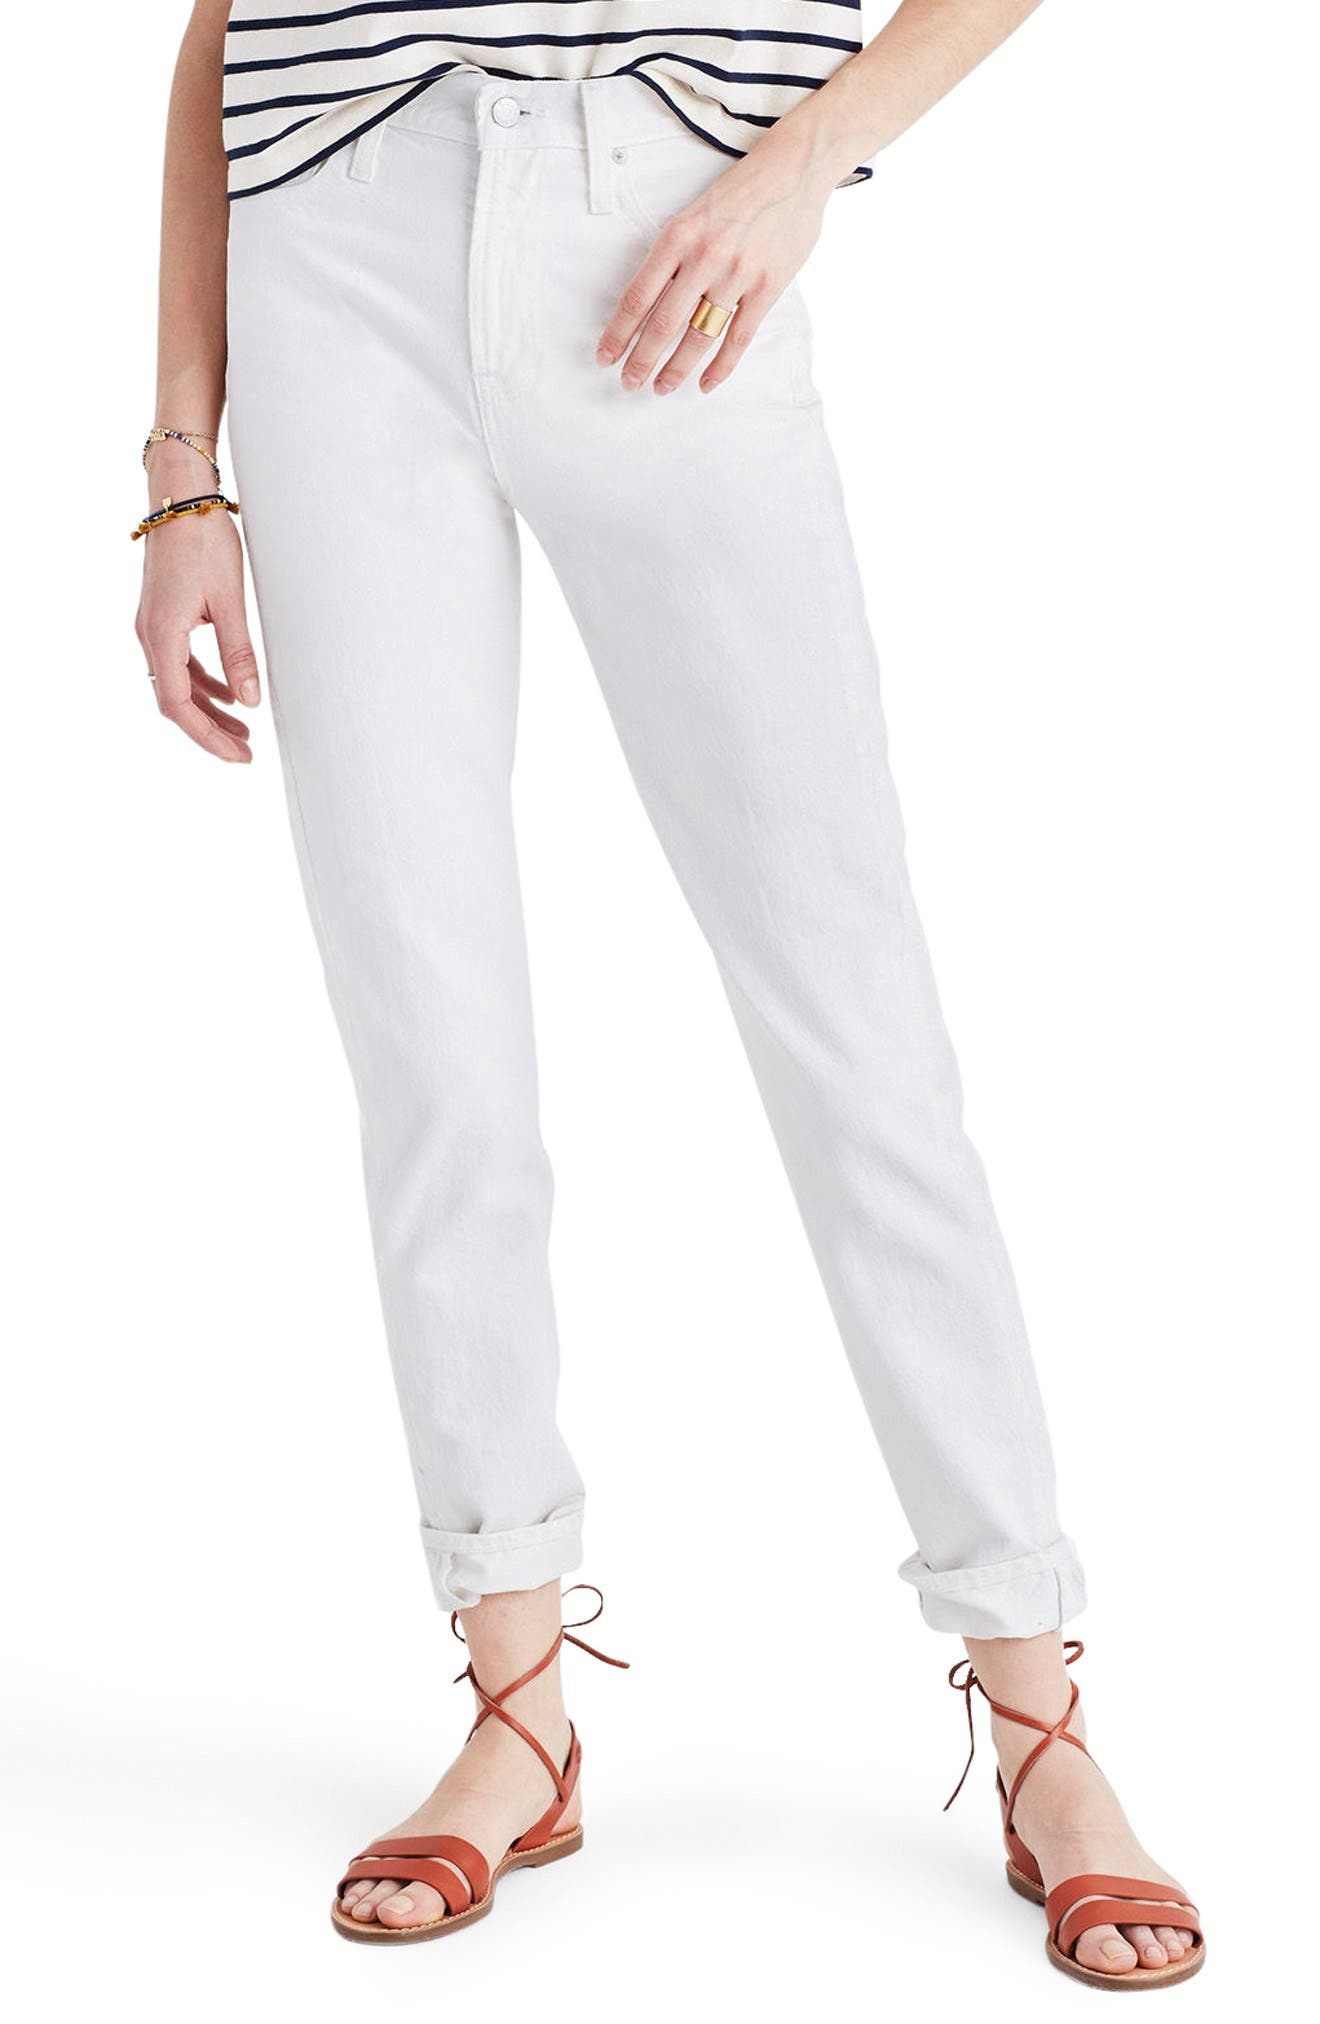 Alternate Image 1 Selected - Madewell Perfect Summer High Waist Ankle Jeans (Tile White)